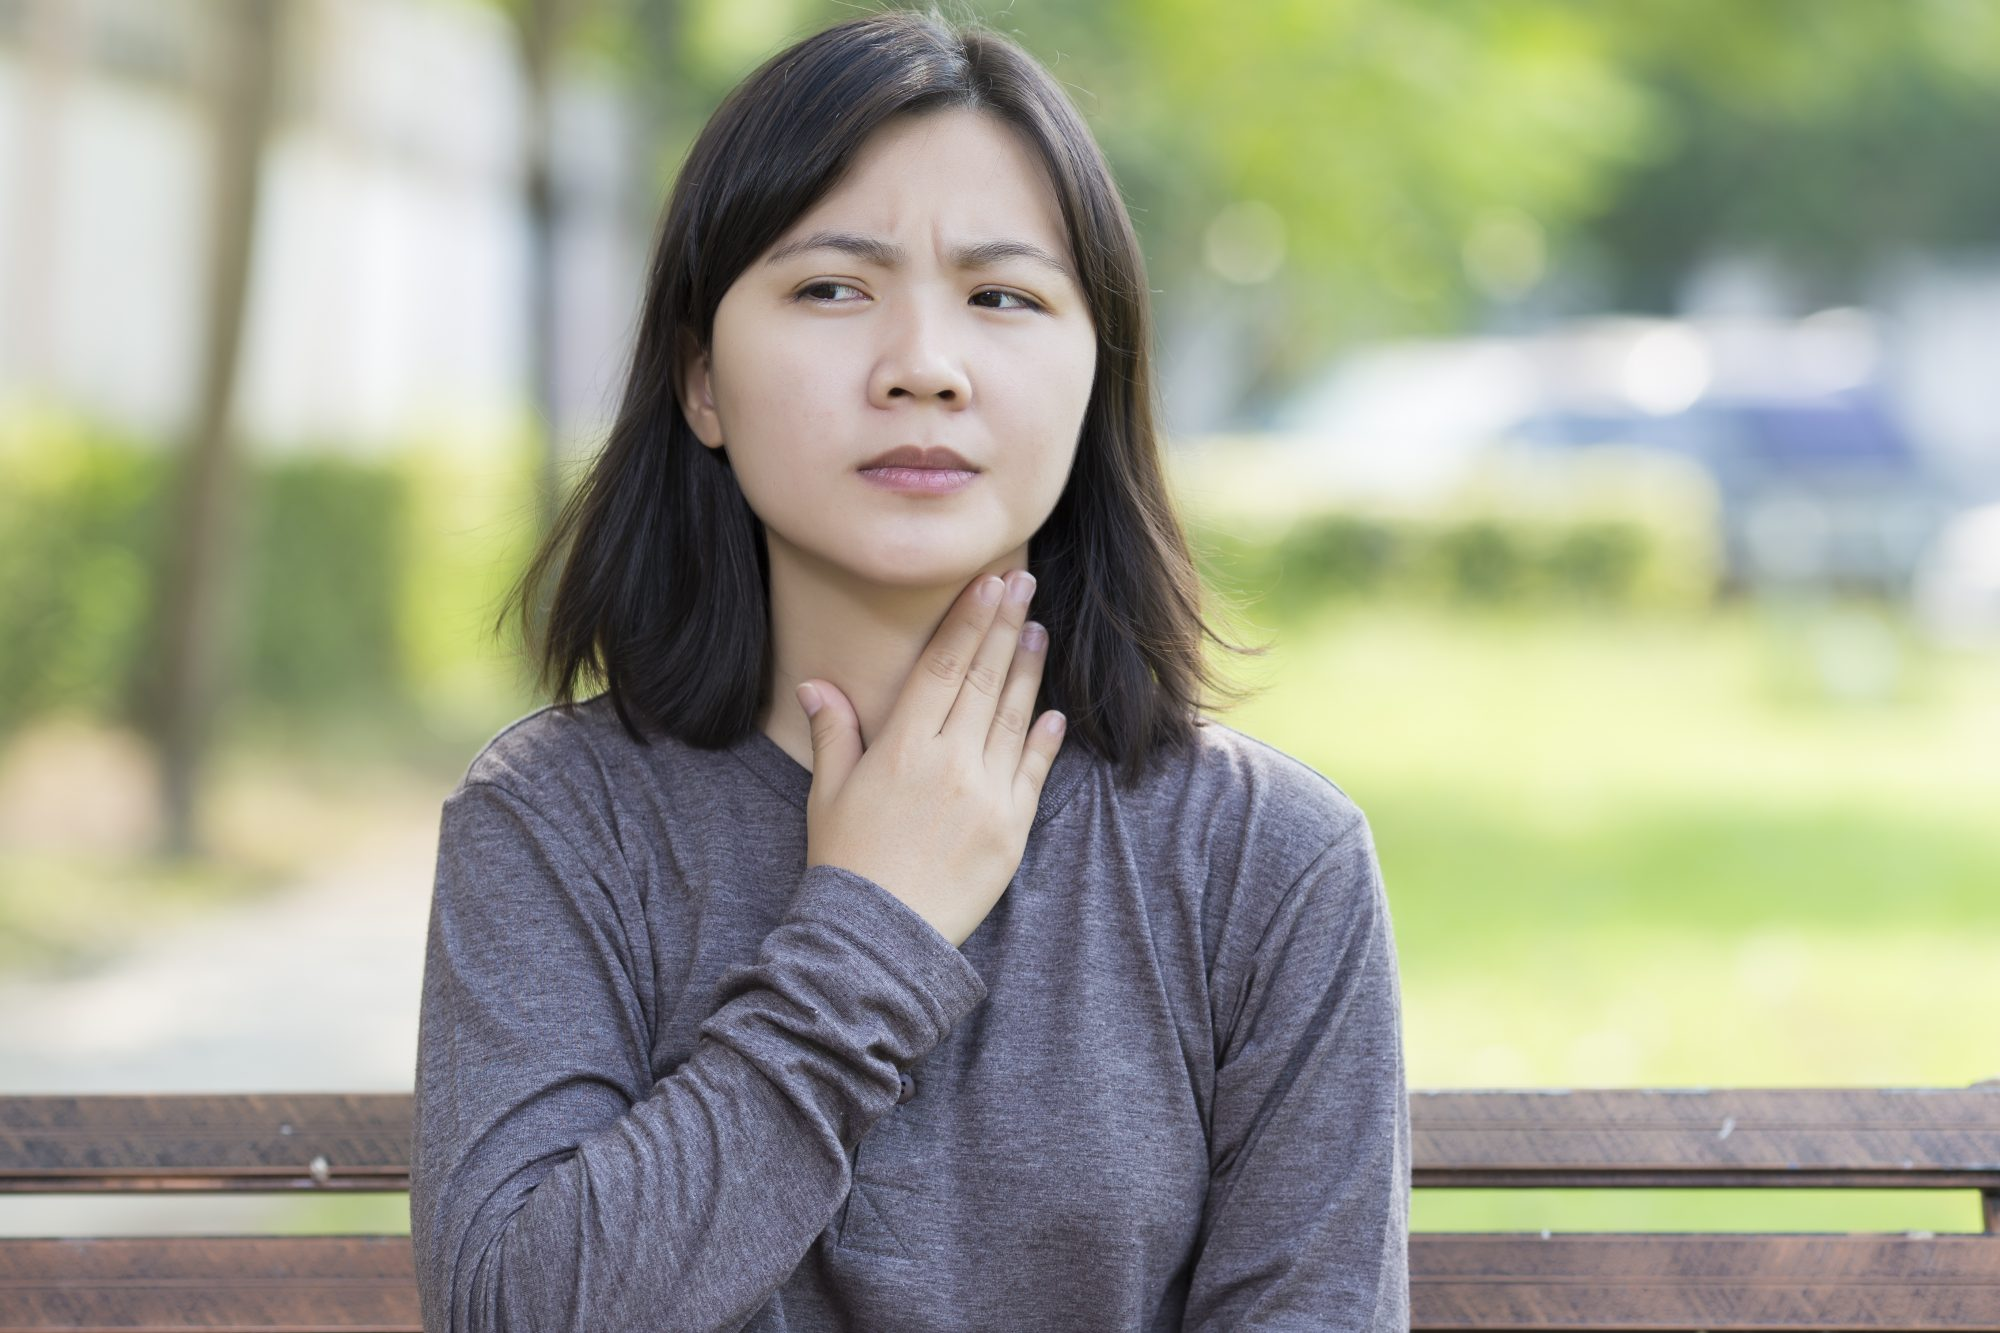 Myth: If you have a lump on your neck, you definitely have a thyroid problem